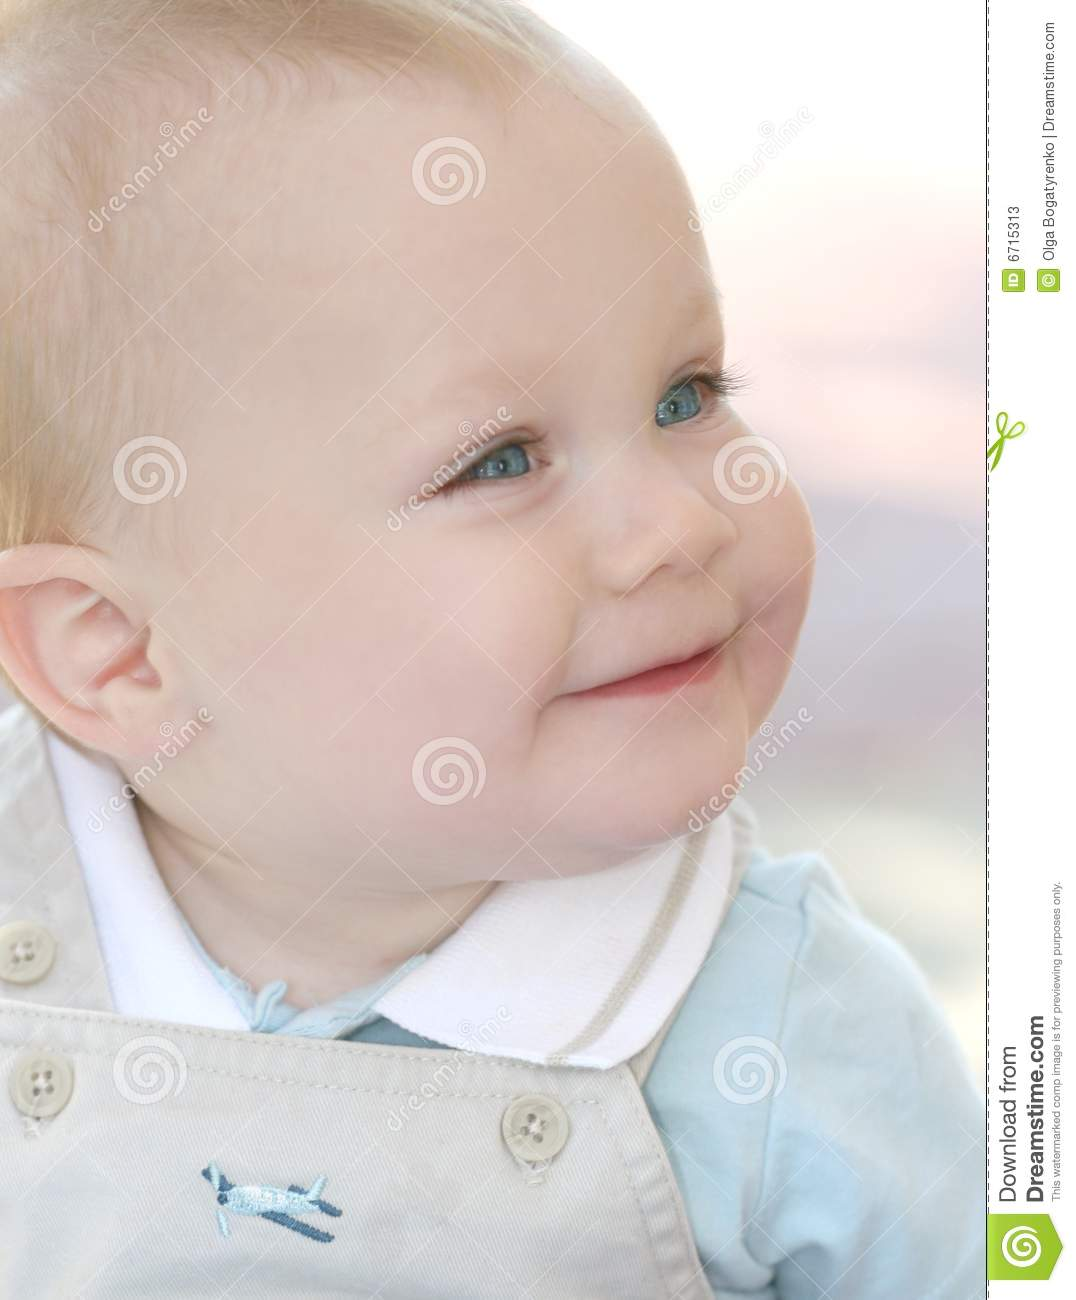 Cute, Adorable Baby Boy With Blue Eyes Stock Photos ...